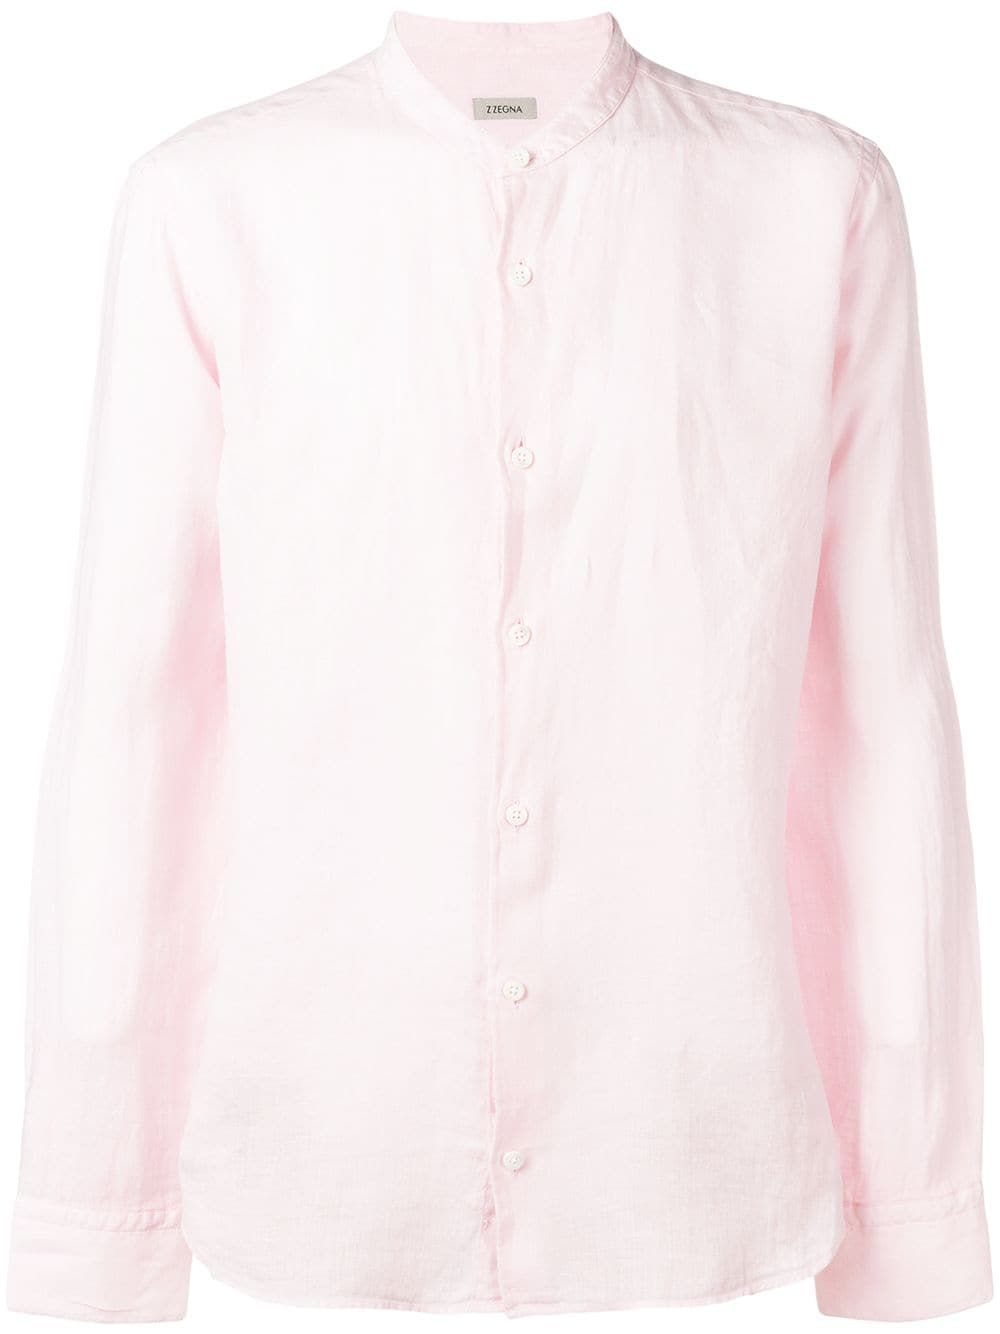 532e294a Z Zegna band collar shirt - Pink | Products in 2019 | Banded collar ...